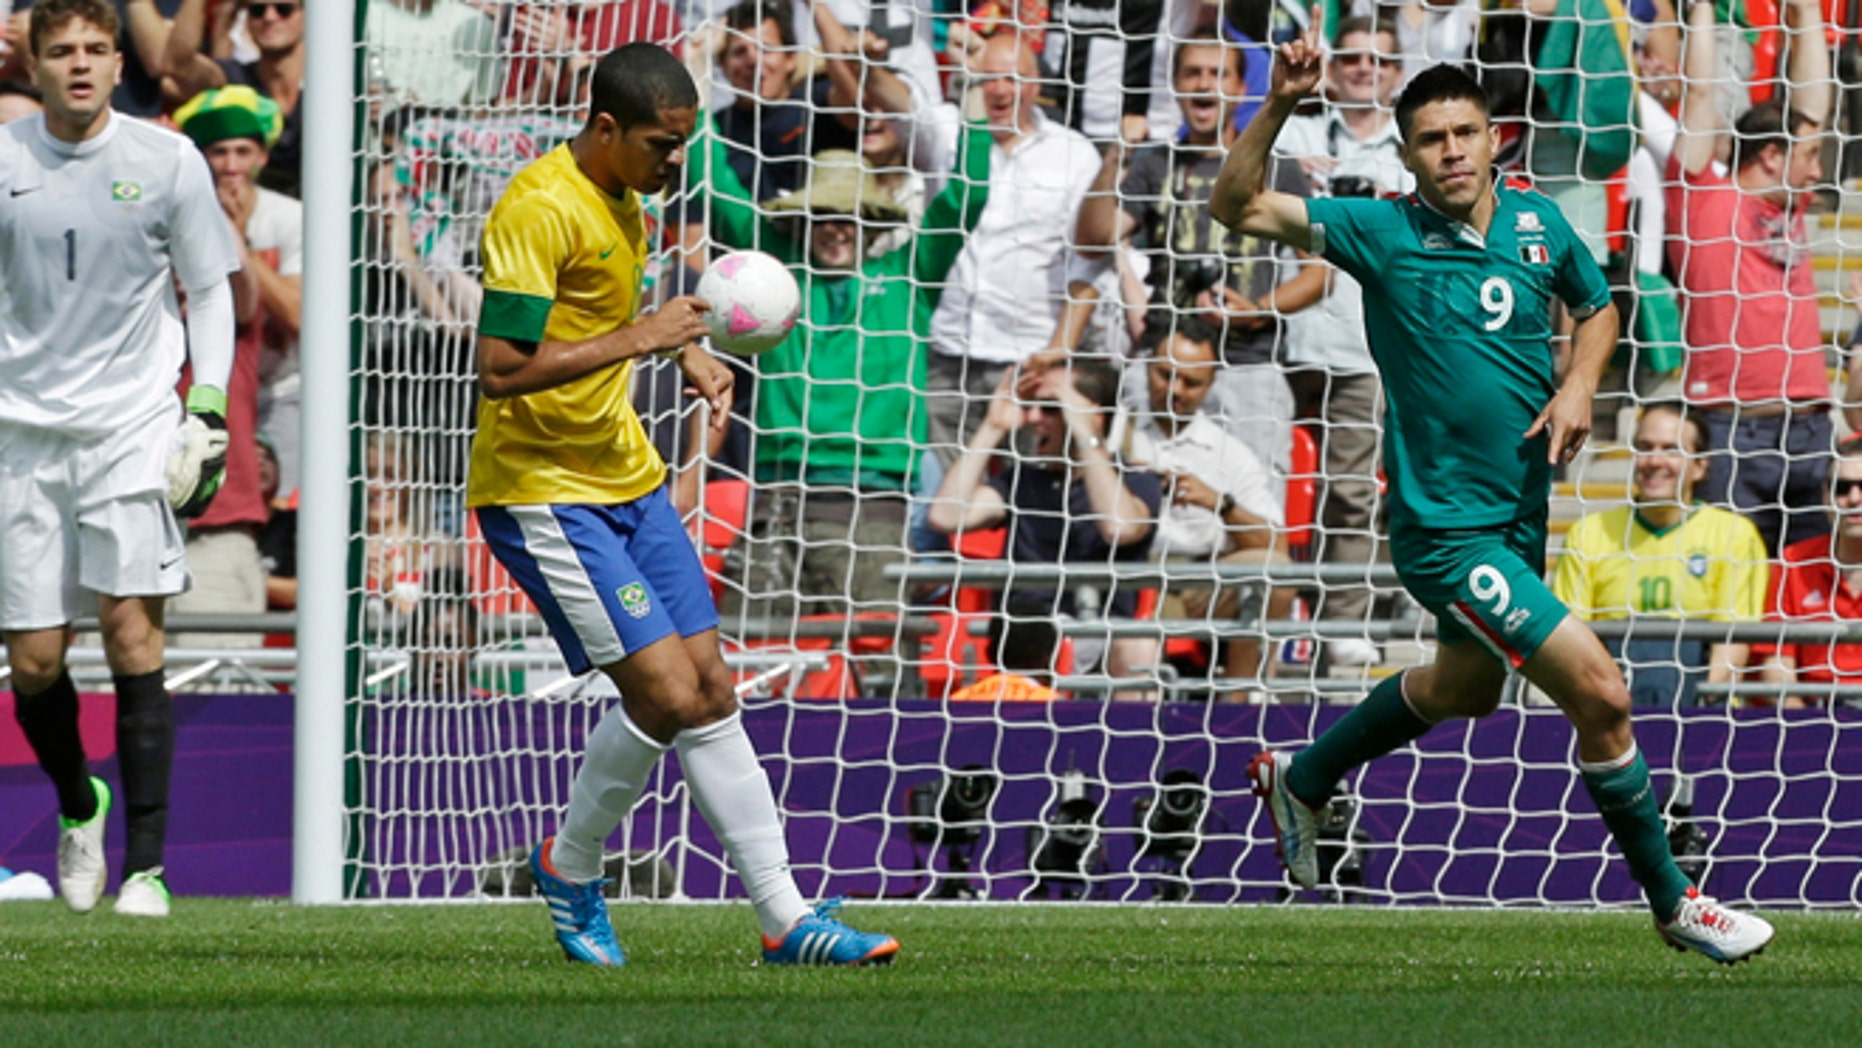 Aug. 11, 2012: Mexico's Oribe Peralta (9) celebrates his goal during the men's soccer final against Brazil at the London Olympics.